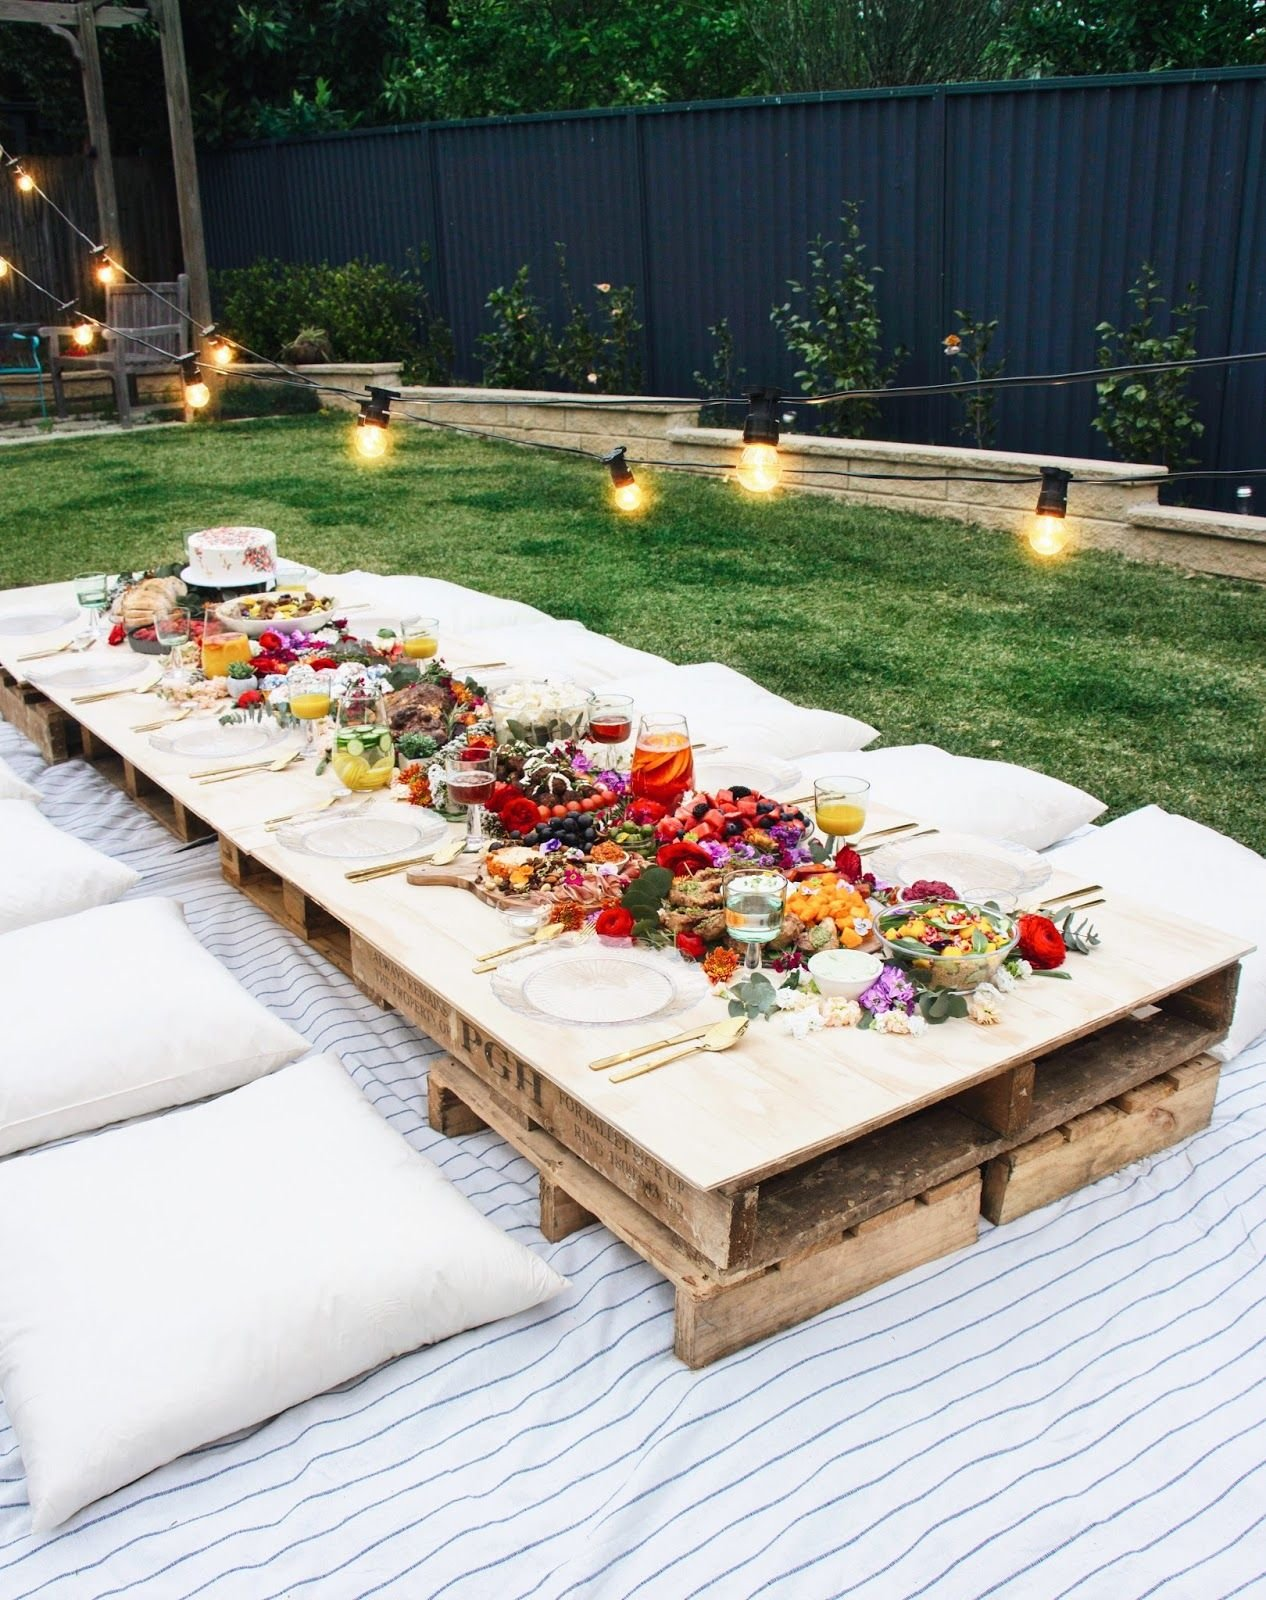 18.SIMPHOME.COM Must see backyard party ideas for a relaxing and luxurious meeting